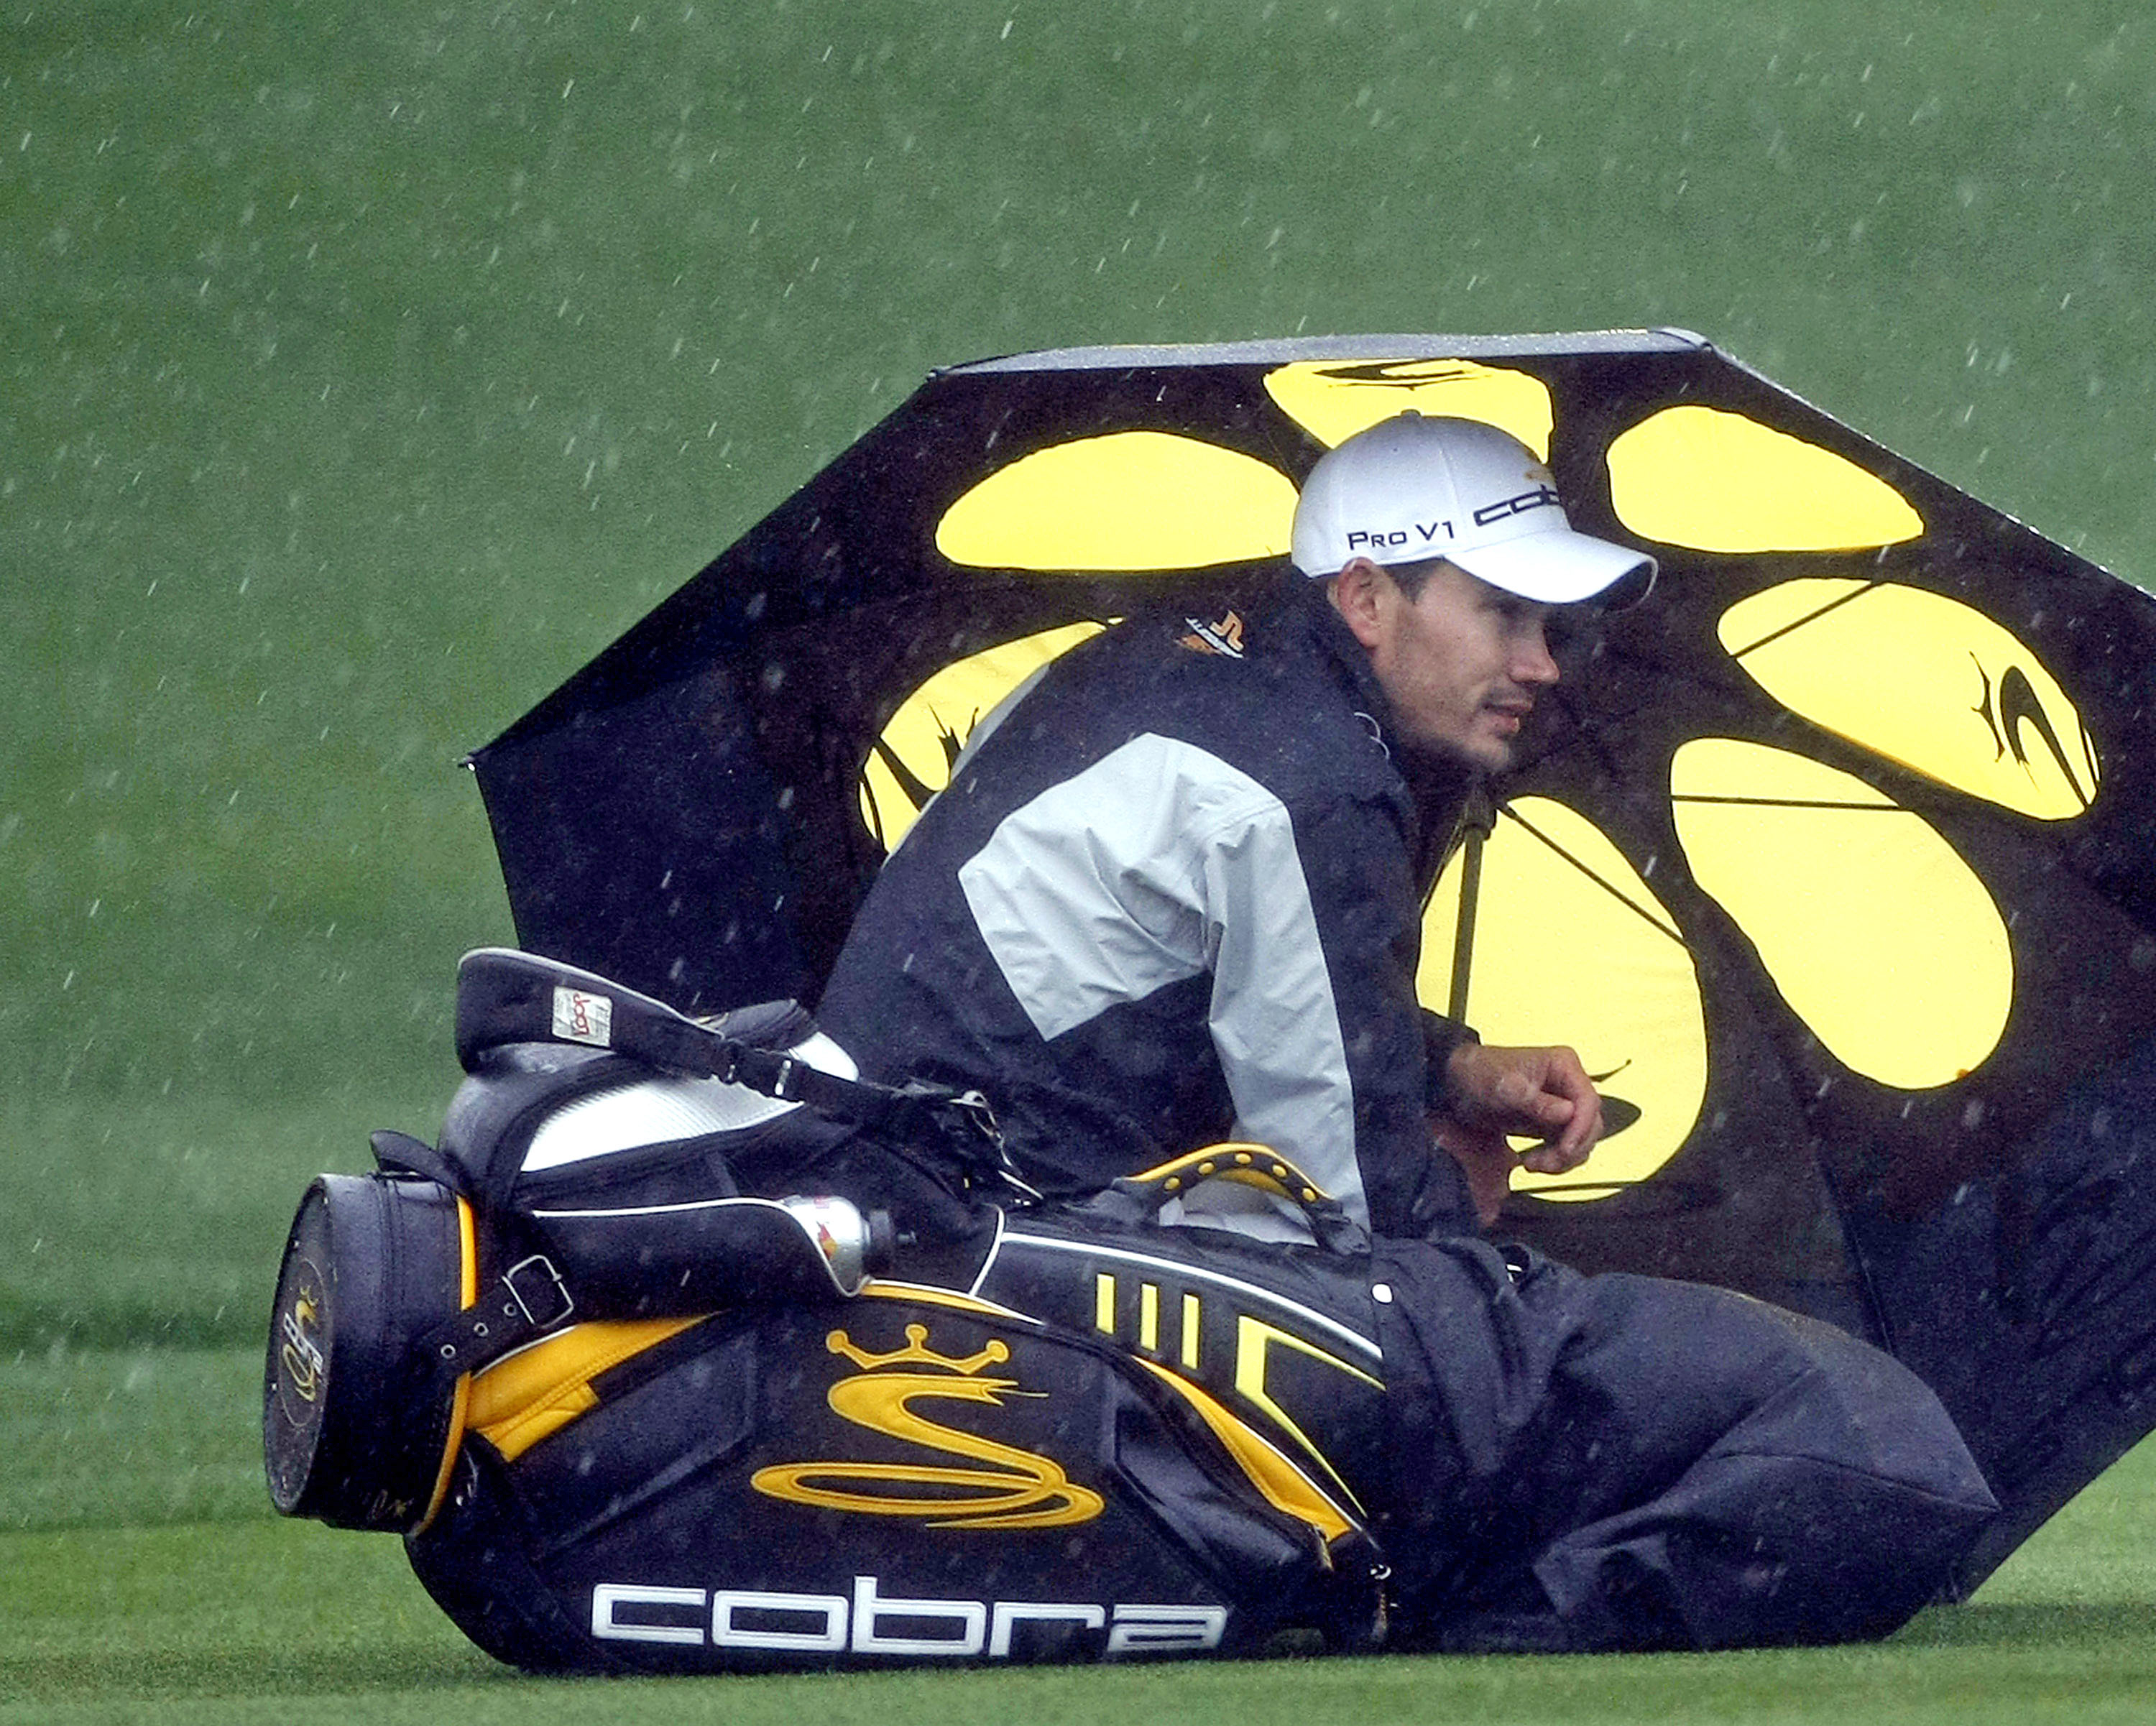 Camilo Villegas at the Accenture Match Play Championship.